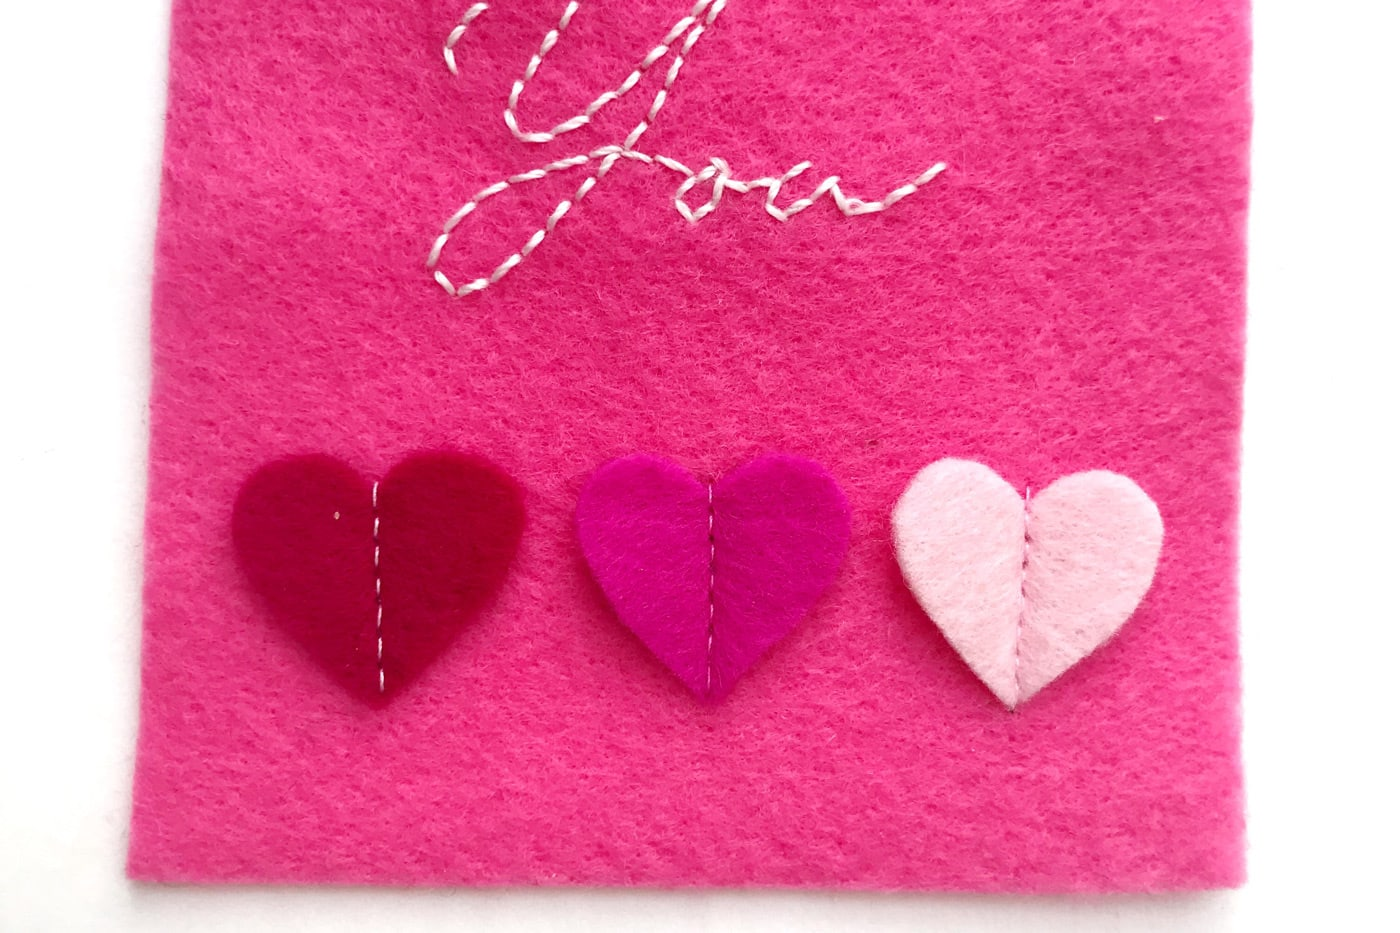 hand embroidered felt gift tags on white table showing detail of stitched down hearts